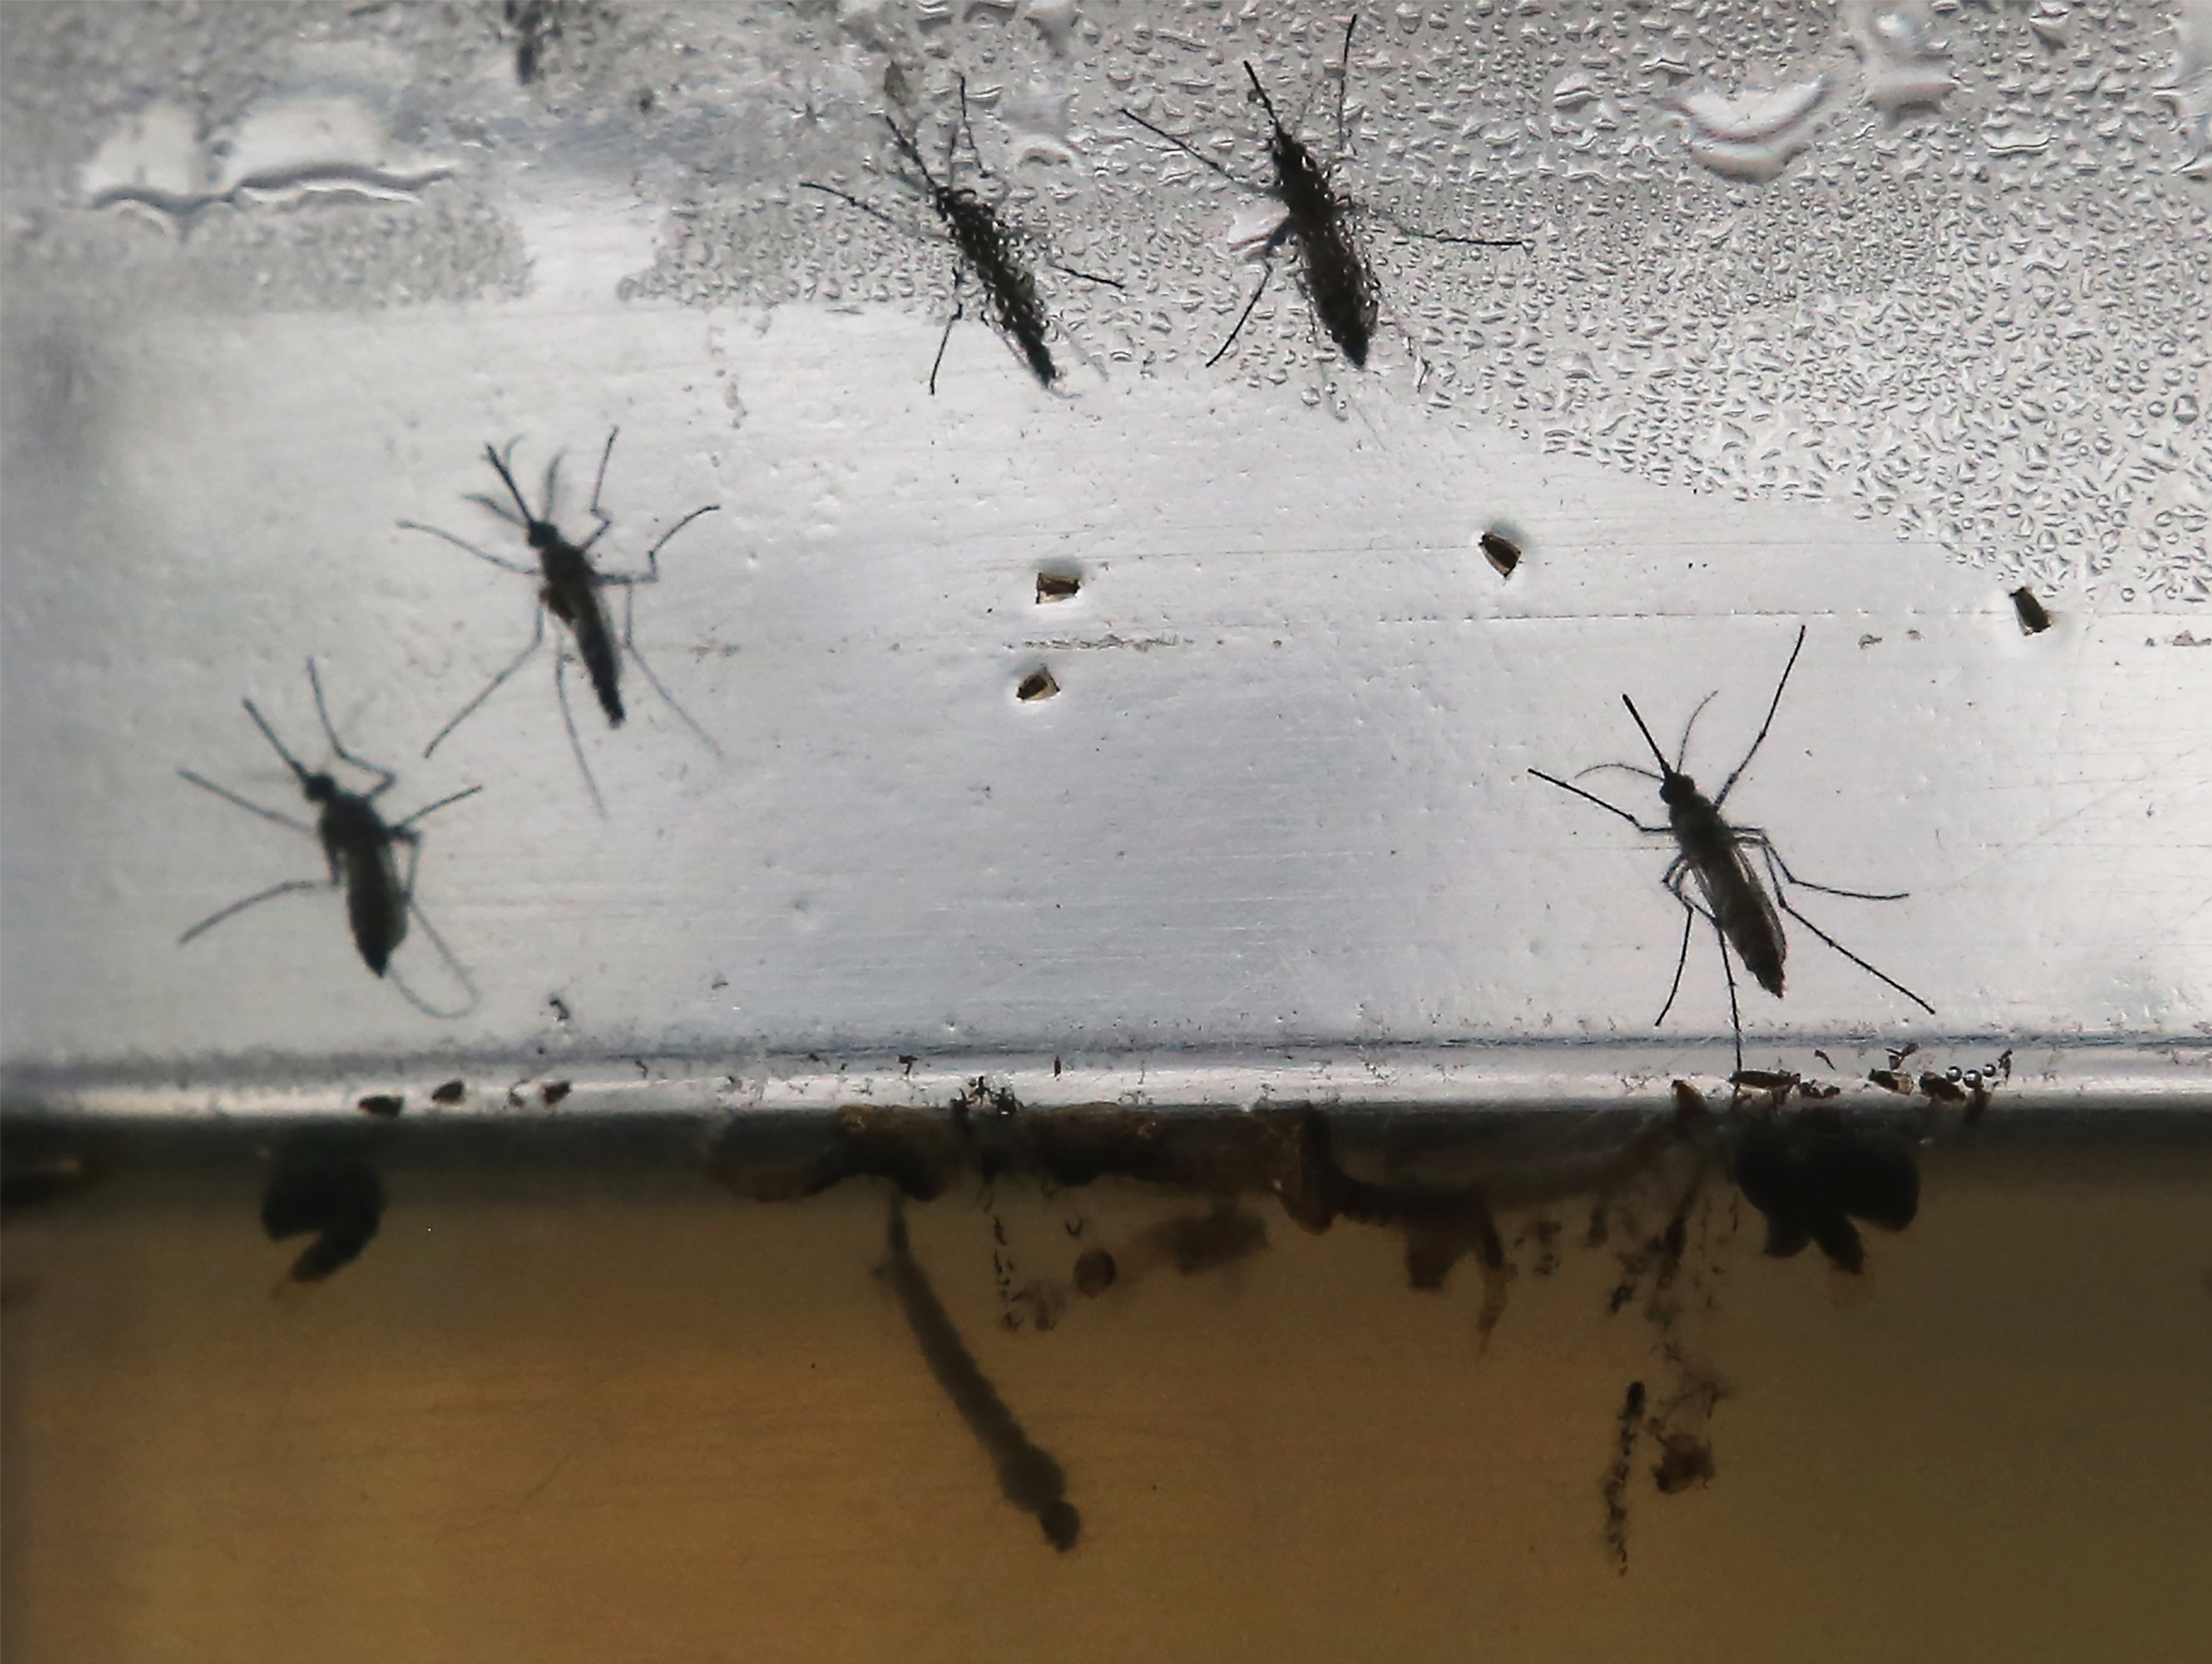 Zika virus is transmitted by the Aedes aegypti mosquito, shown here in various stages of development. The mosquito is not common in the Buffalo Niagara region.